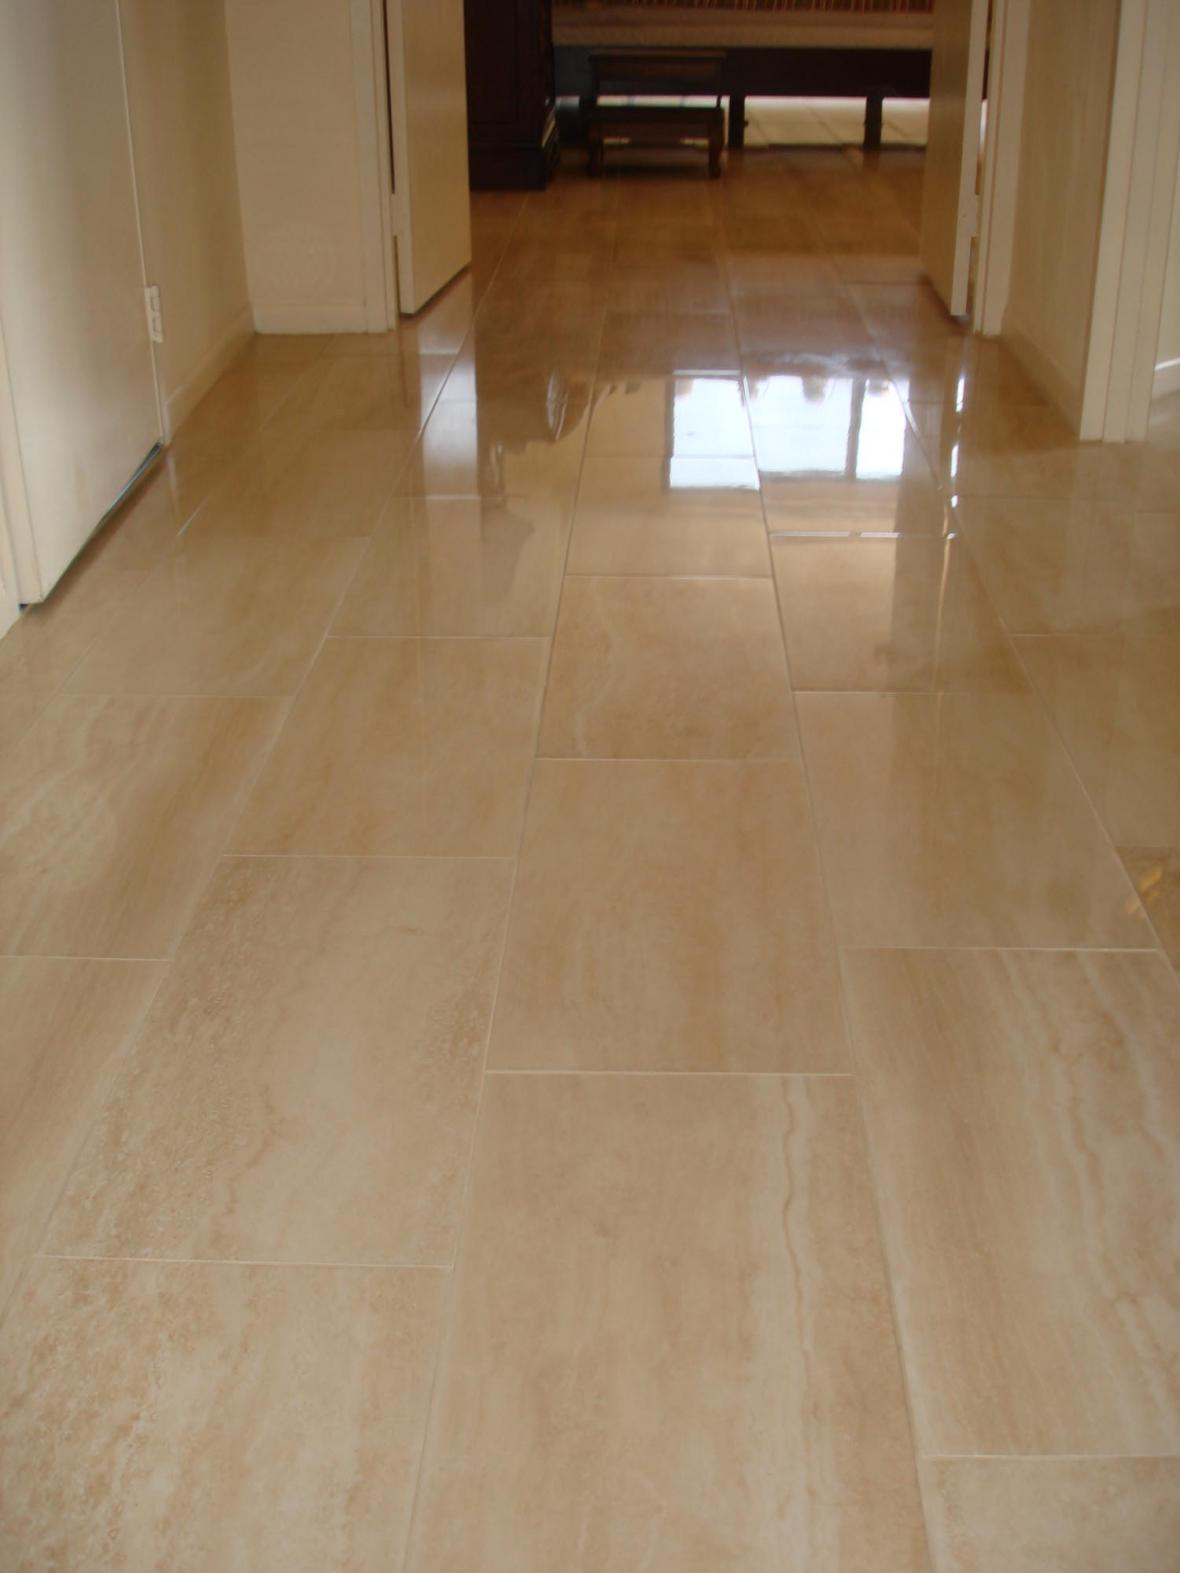 Porcelain Floor Tiles Jose And Margie R New Jersey Custom Tile